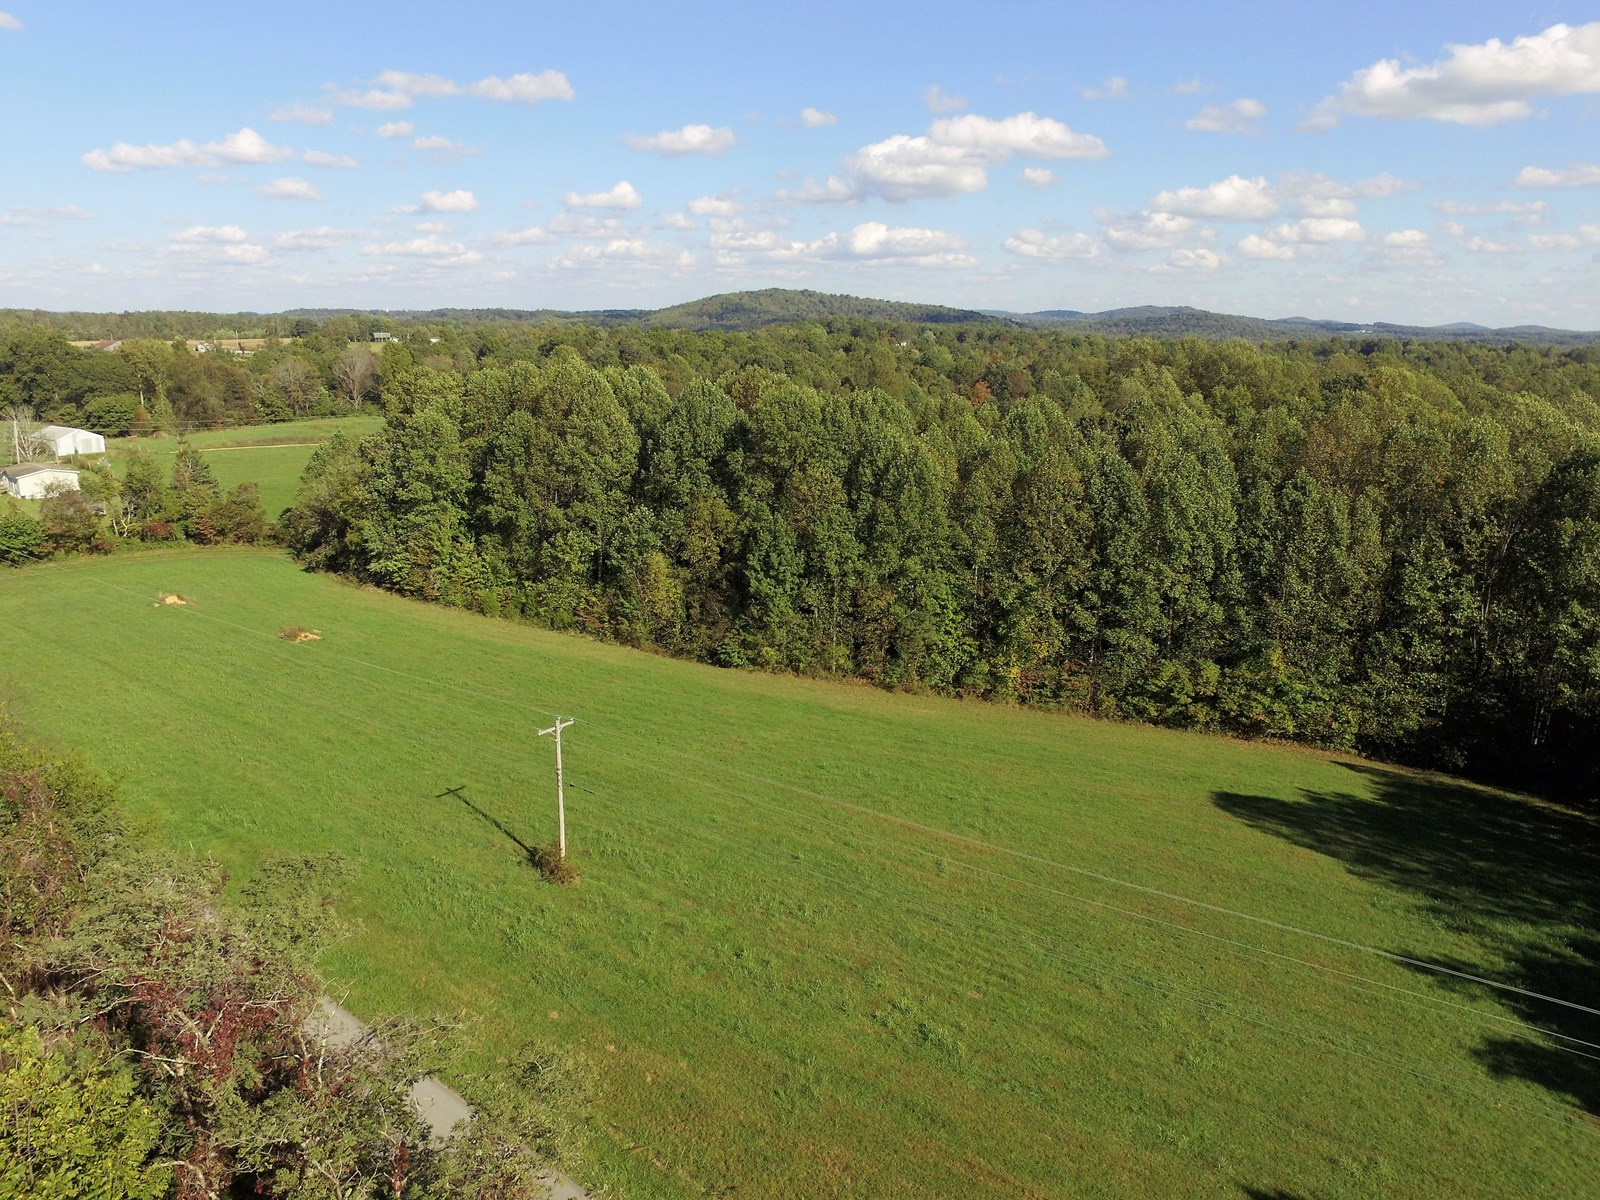 SMALL ACREAGE-BUILDING SITES-PASTURE-WOODLAND-LIBERTY, KY.